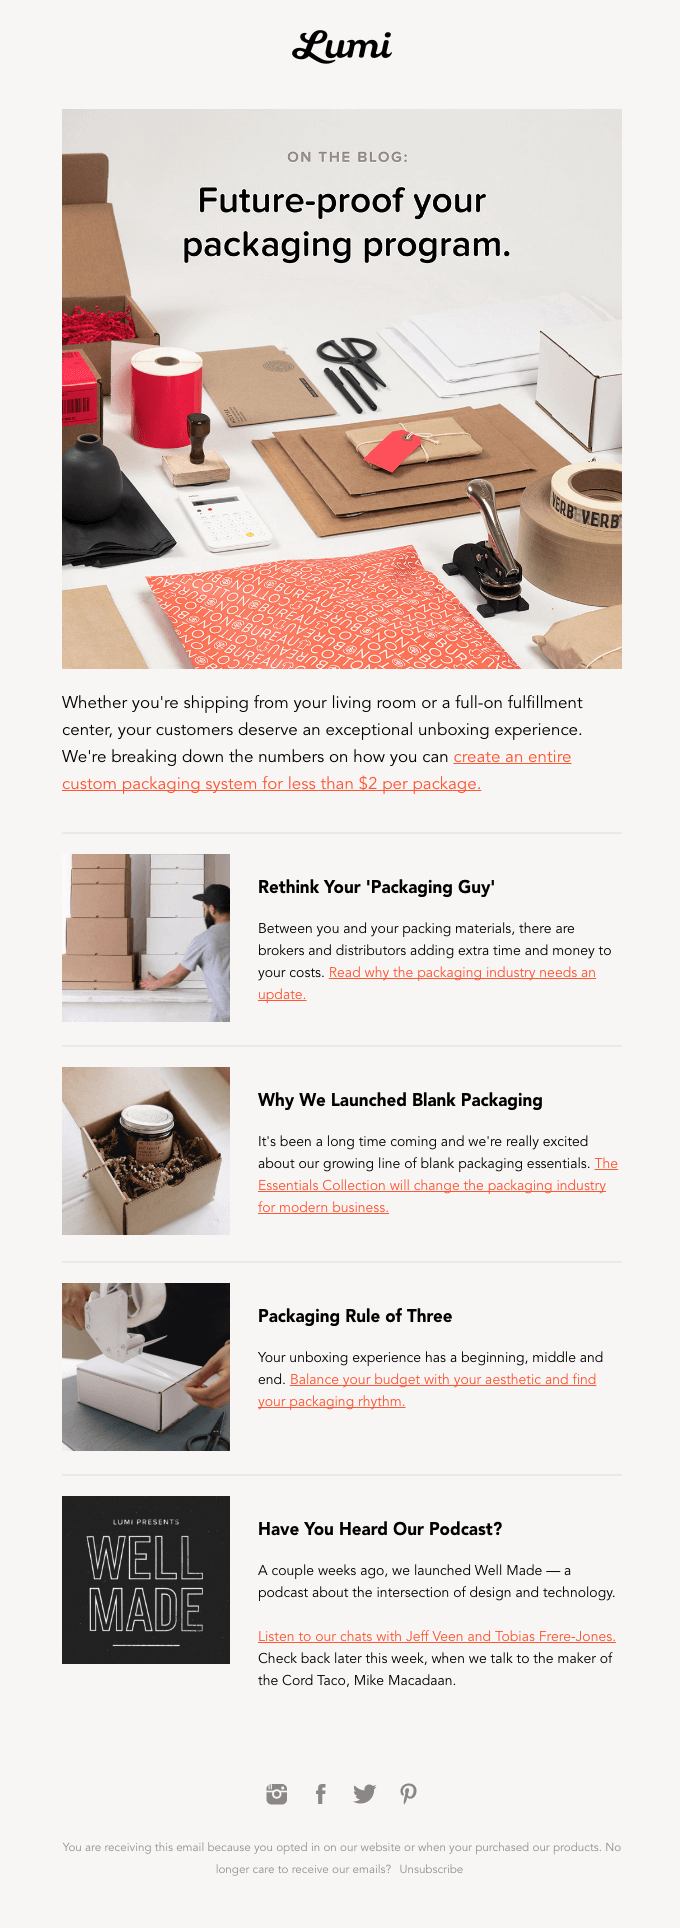 21 High-Performing B2B Email Marketing Examples to